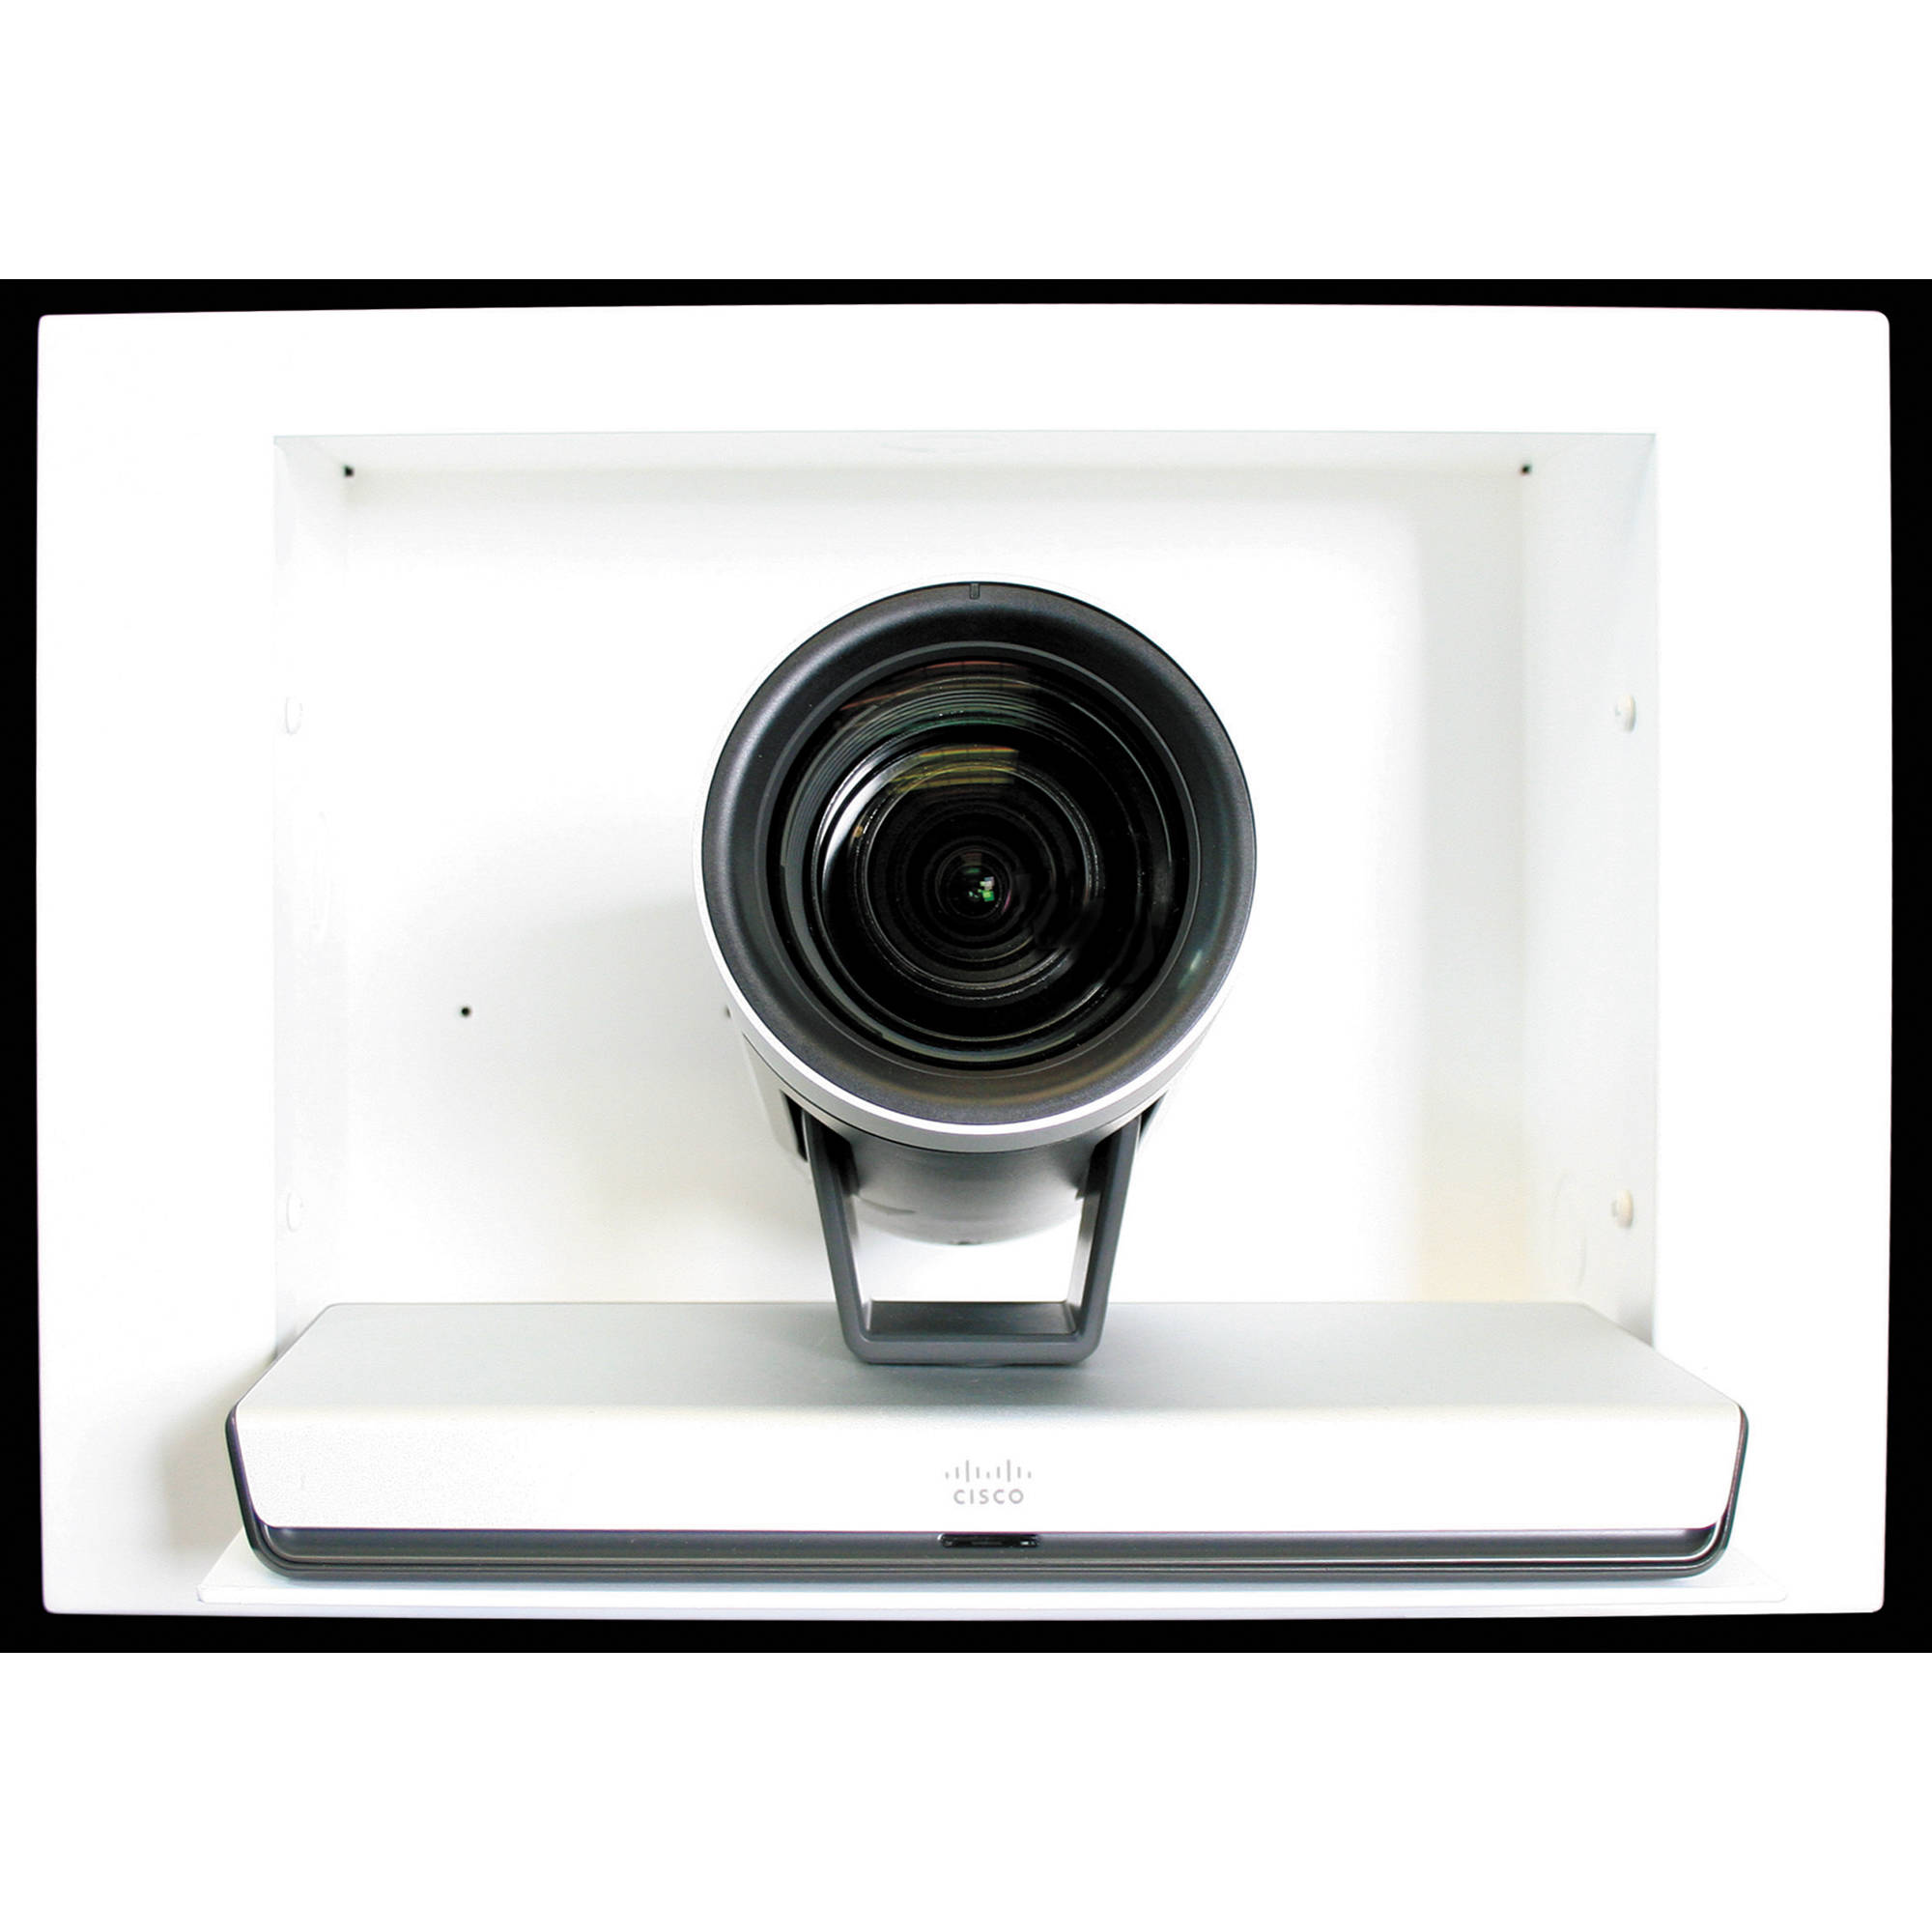 Https C Product 976770 Reg Sigma 20mm T15 Ff High Speed Prime For Canon Sony Vaddio 999 2225 020 In Wall Enclosure Cisco 1089863